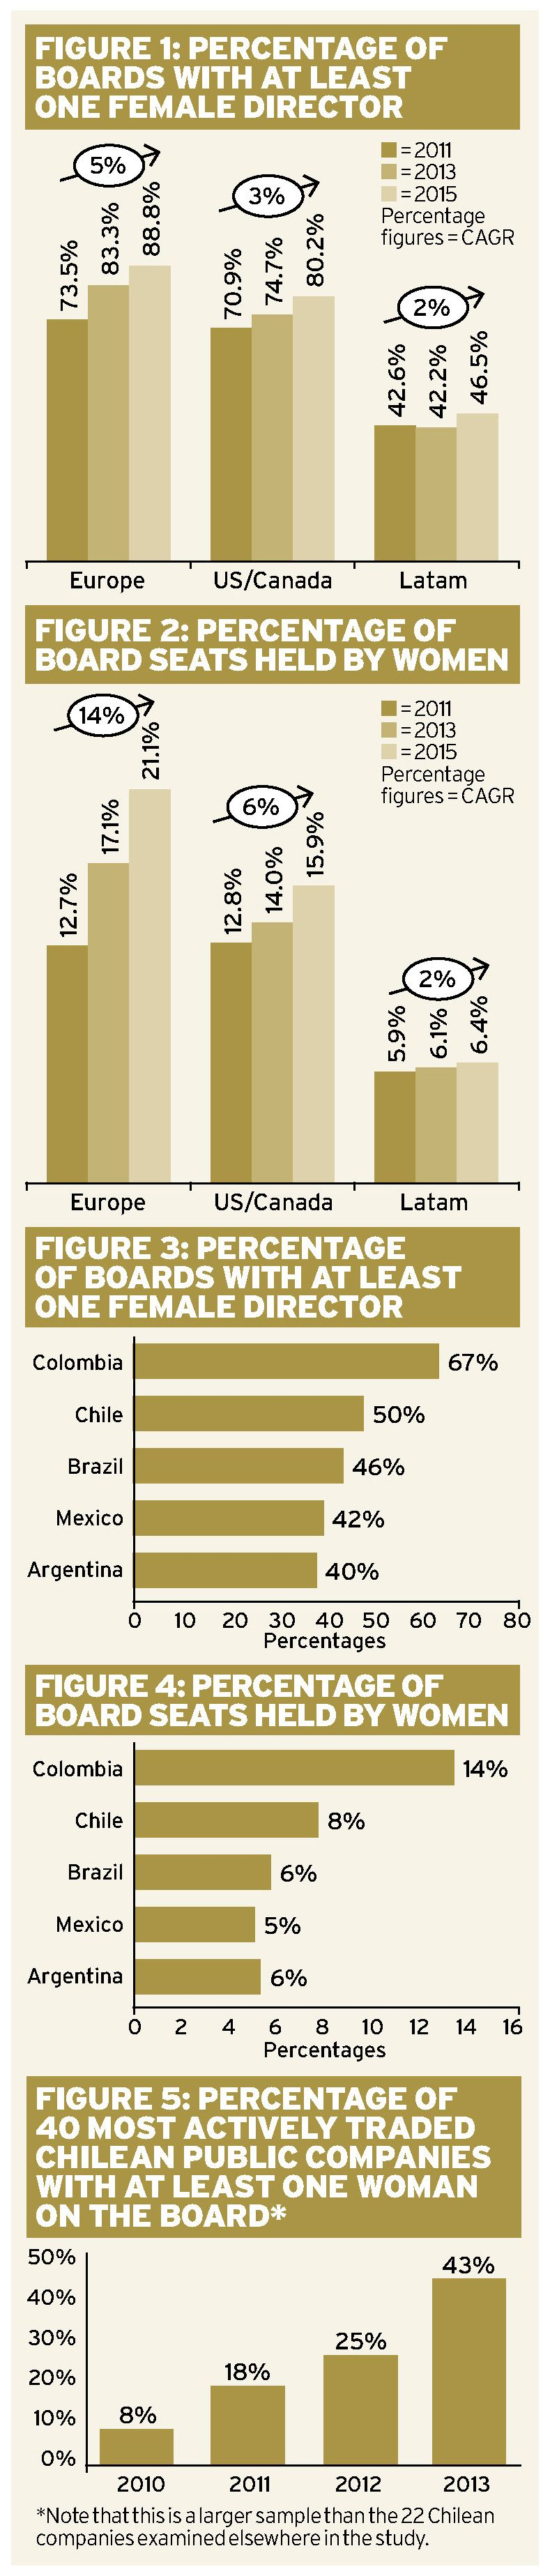 Gender diversity in Latin American boardrooms